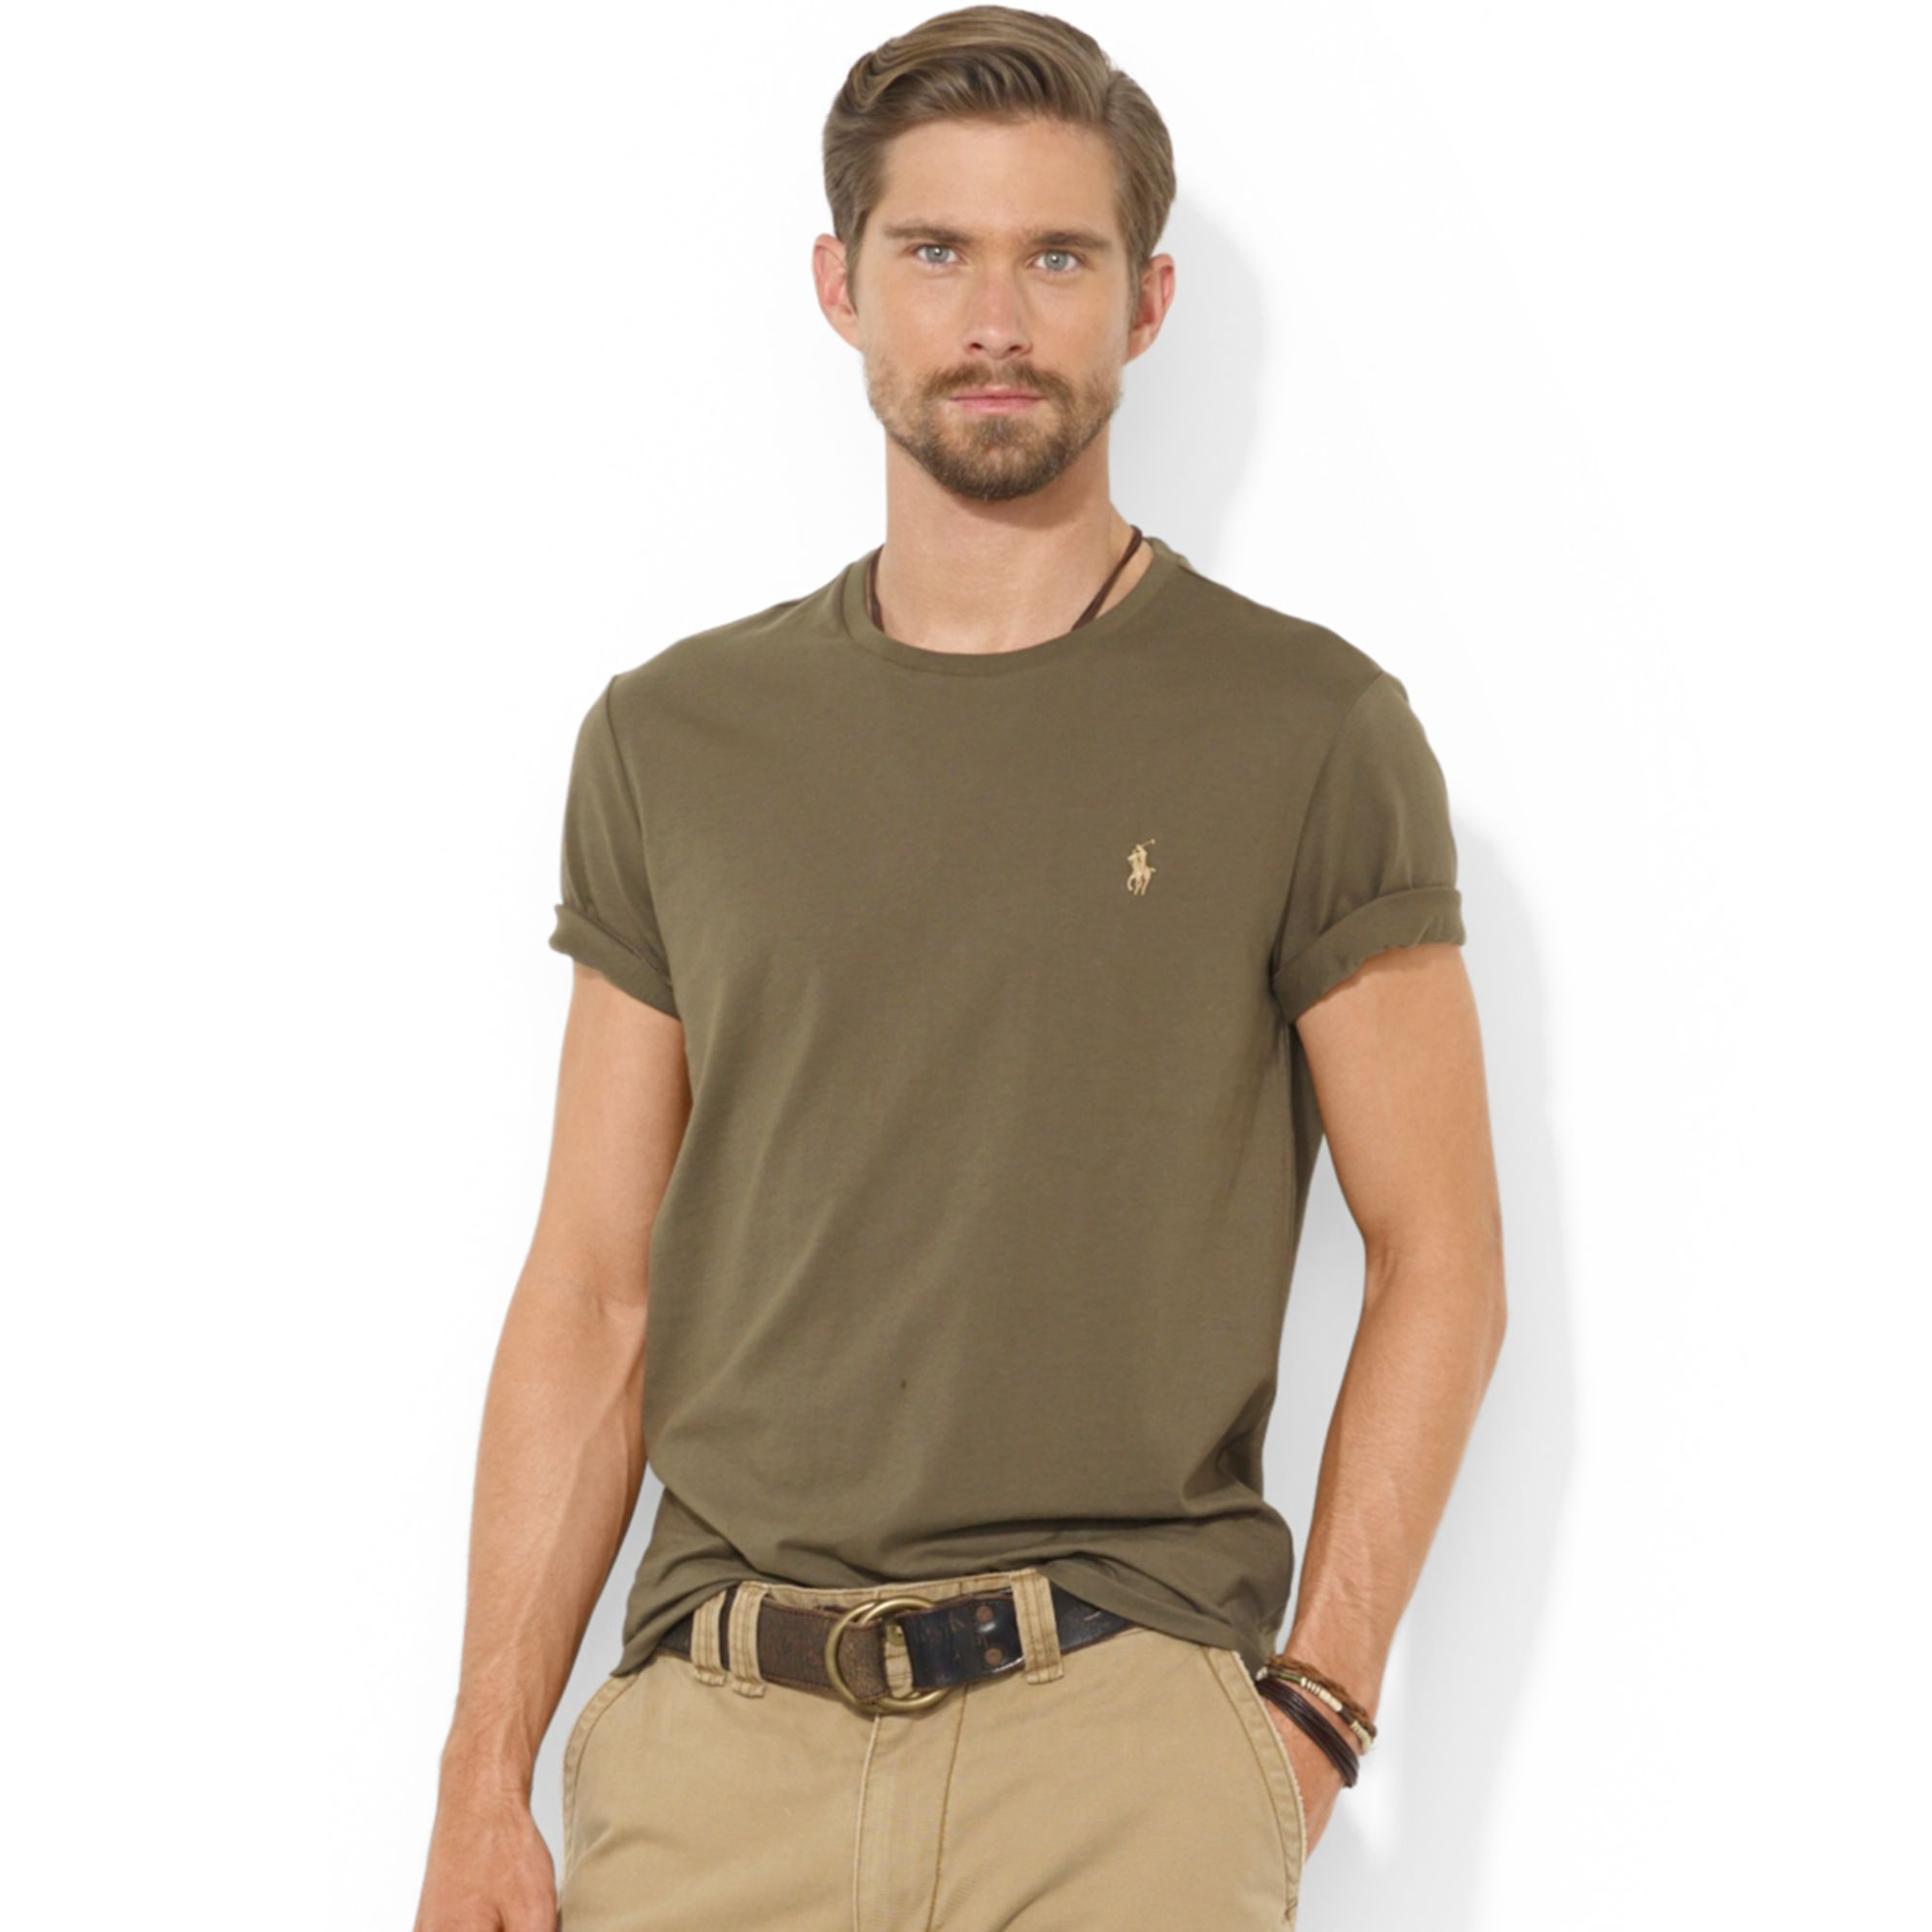 d17e133e ... promo code for lyst ralph lauren polo customfit cotton jersey t shirt  in green ea662 f04ef